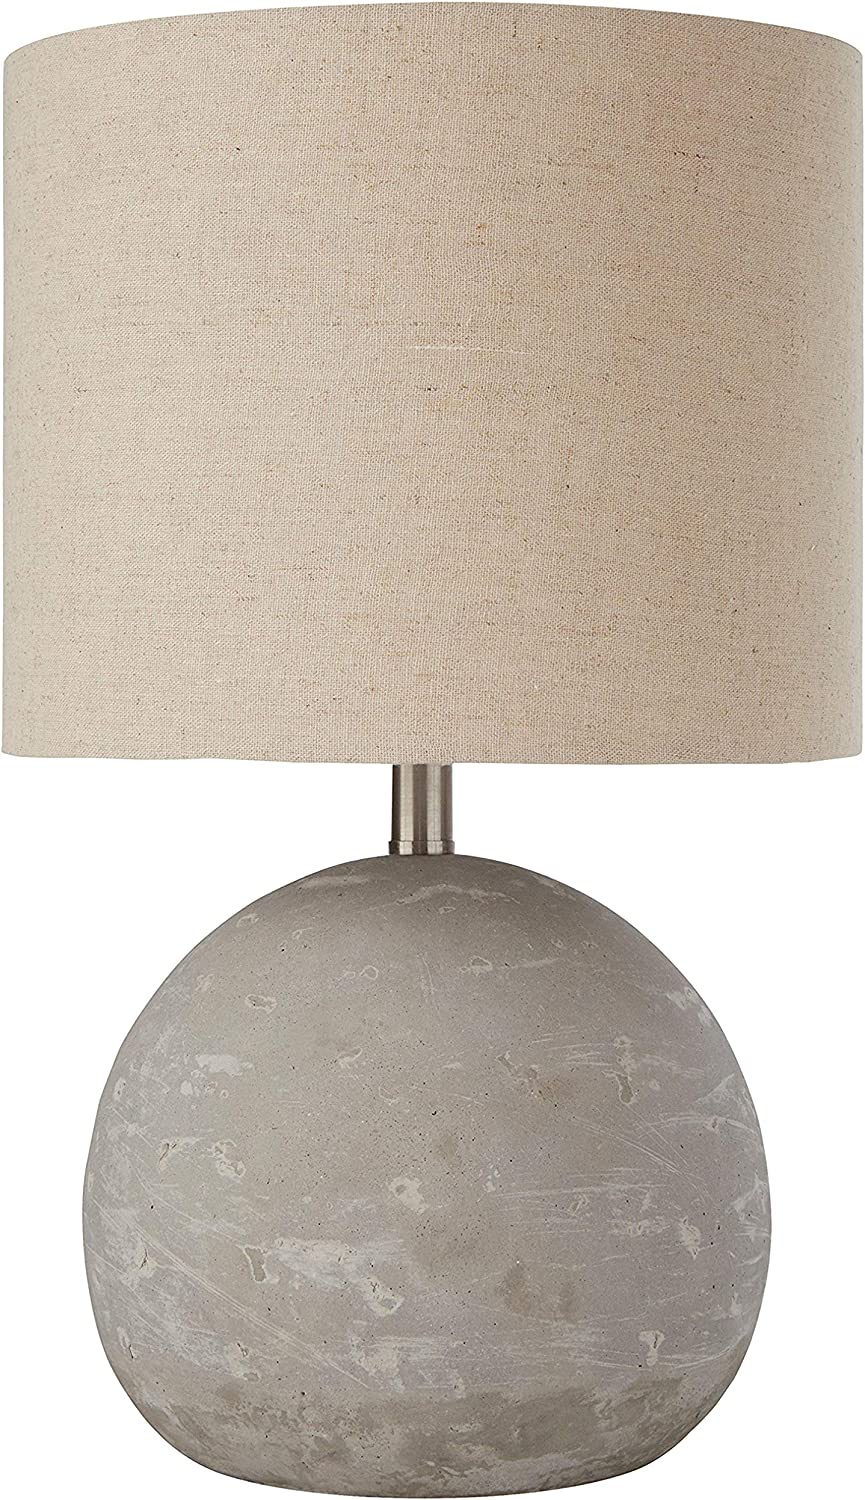 Amazon Brand Stone Beam Industrial Round Concrete Table Desk Lamp With Light Bulb And Beige Shade 16 H Brushed Nickel Amazon Com